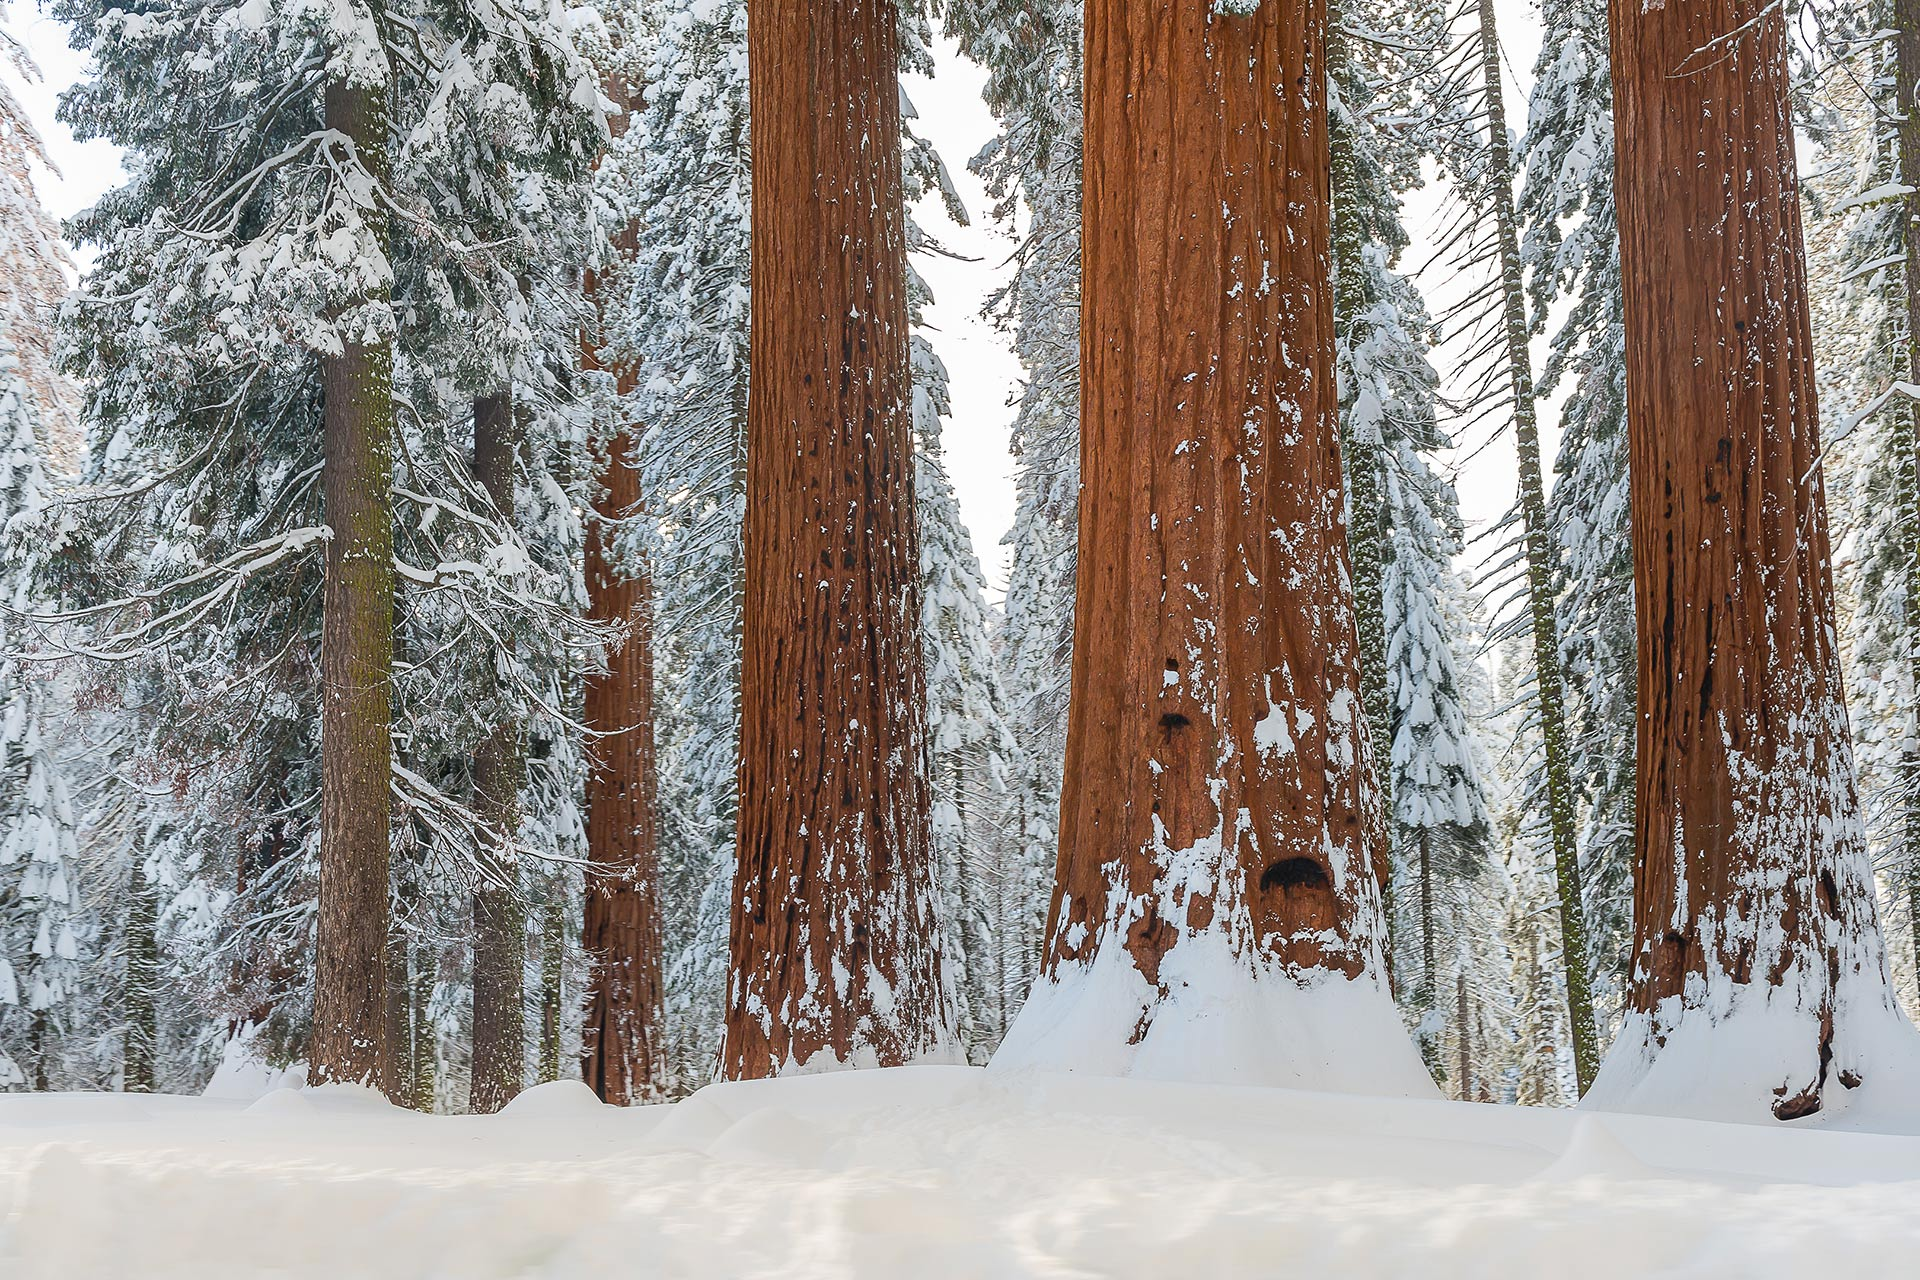 Sequoia and Kings Canyon National Park in the winter.